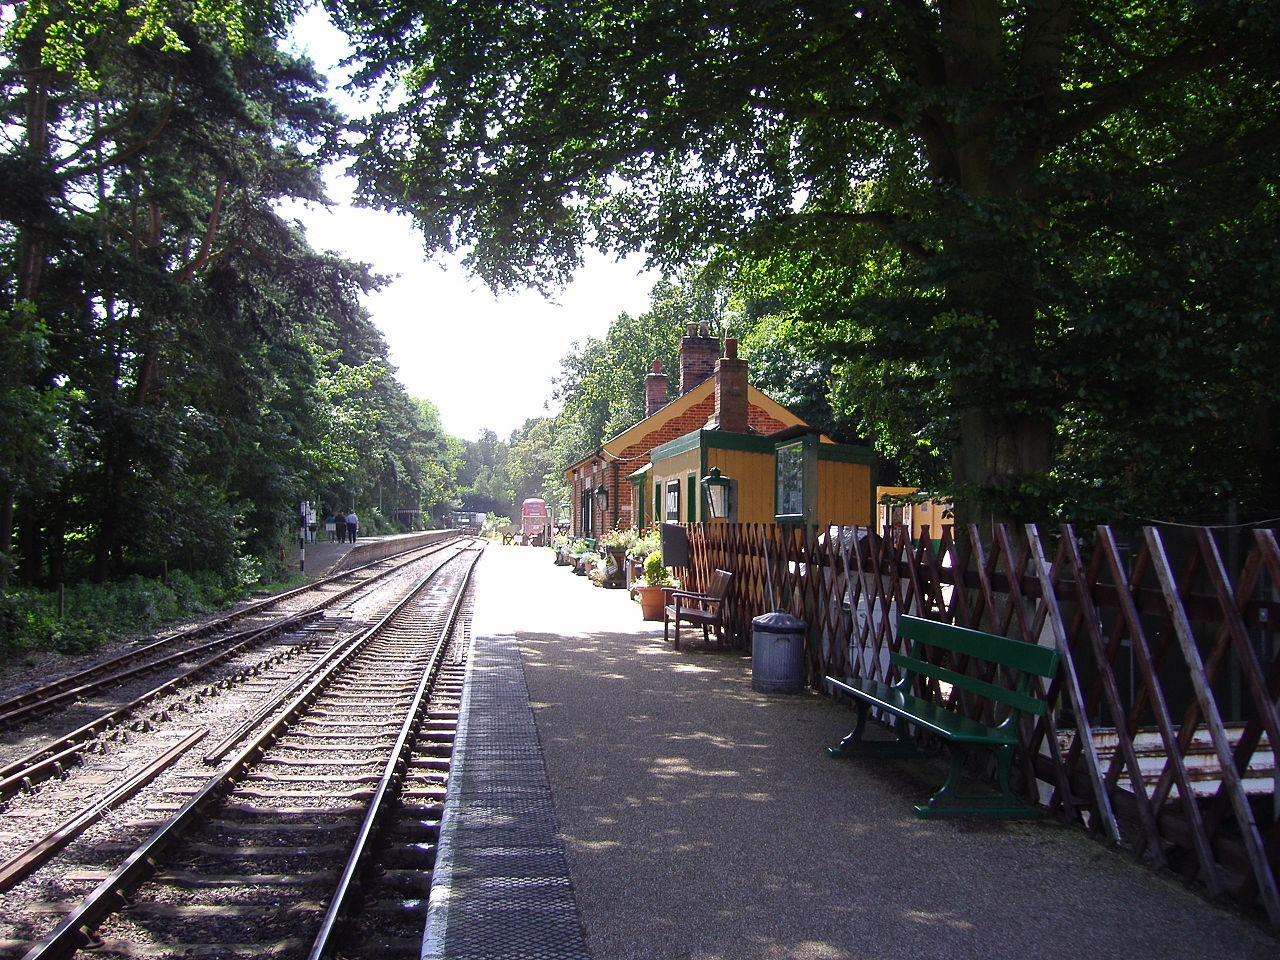 Holt Railway Station